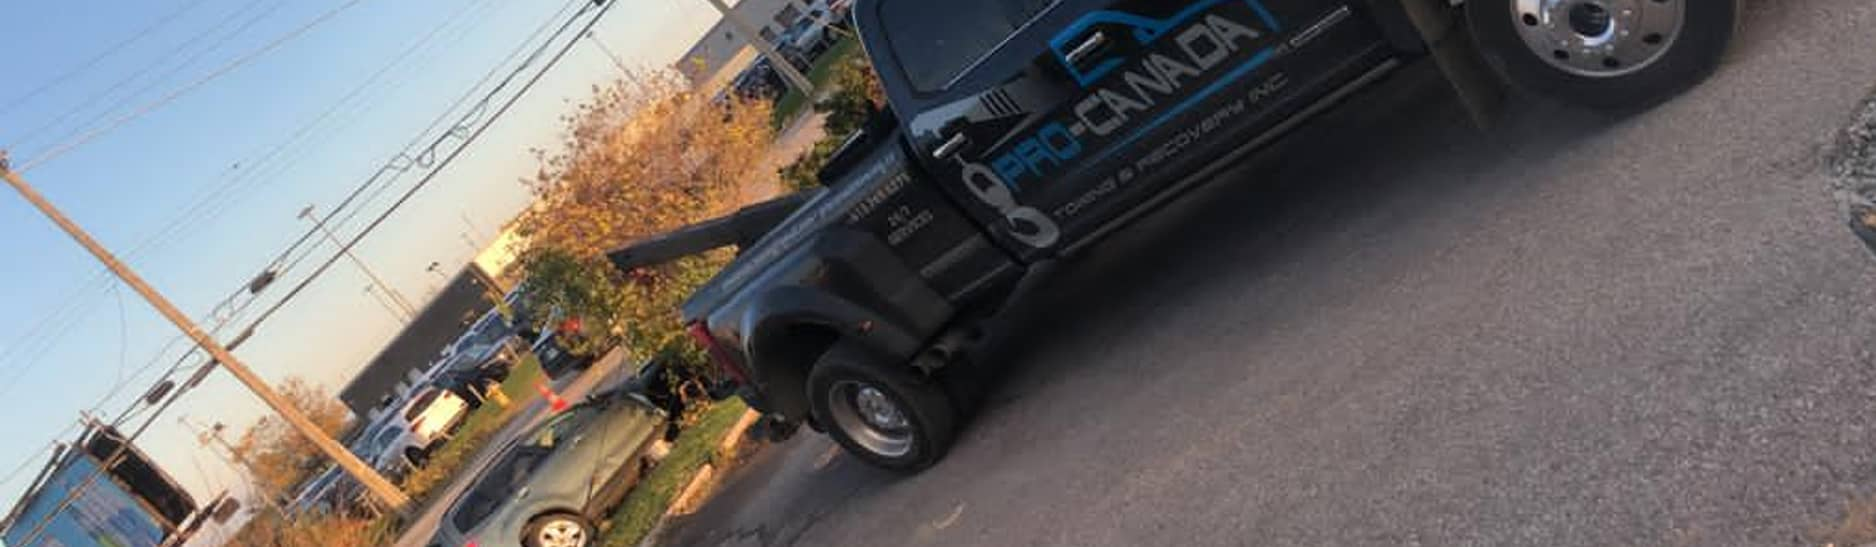 Ottawa Towing Service, Trucking Company and 24 Hour Towing